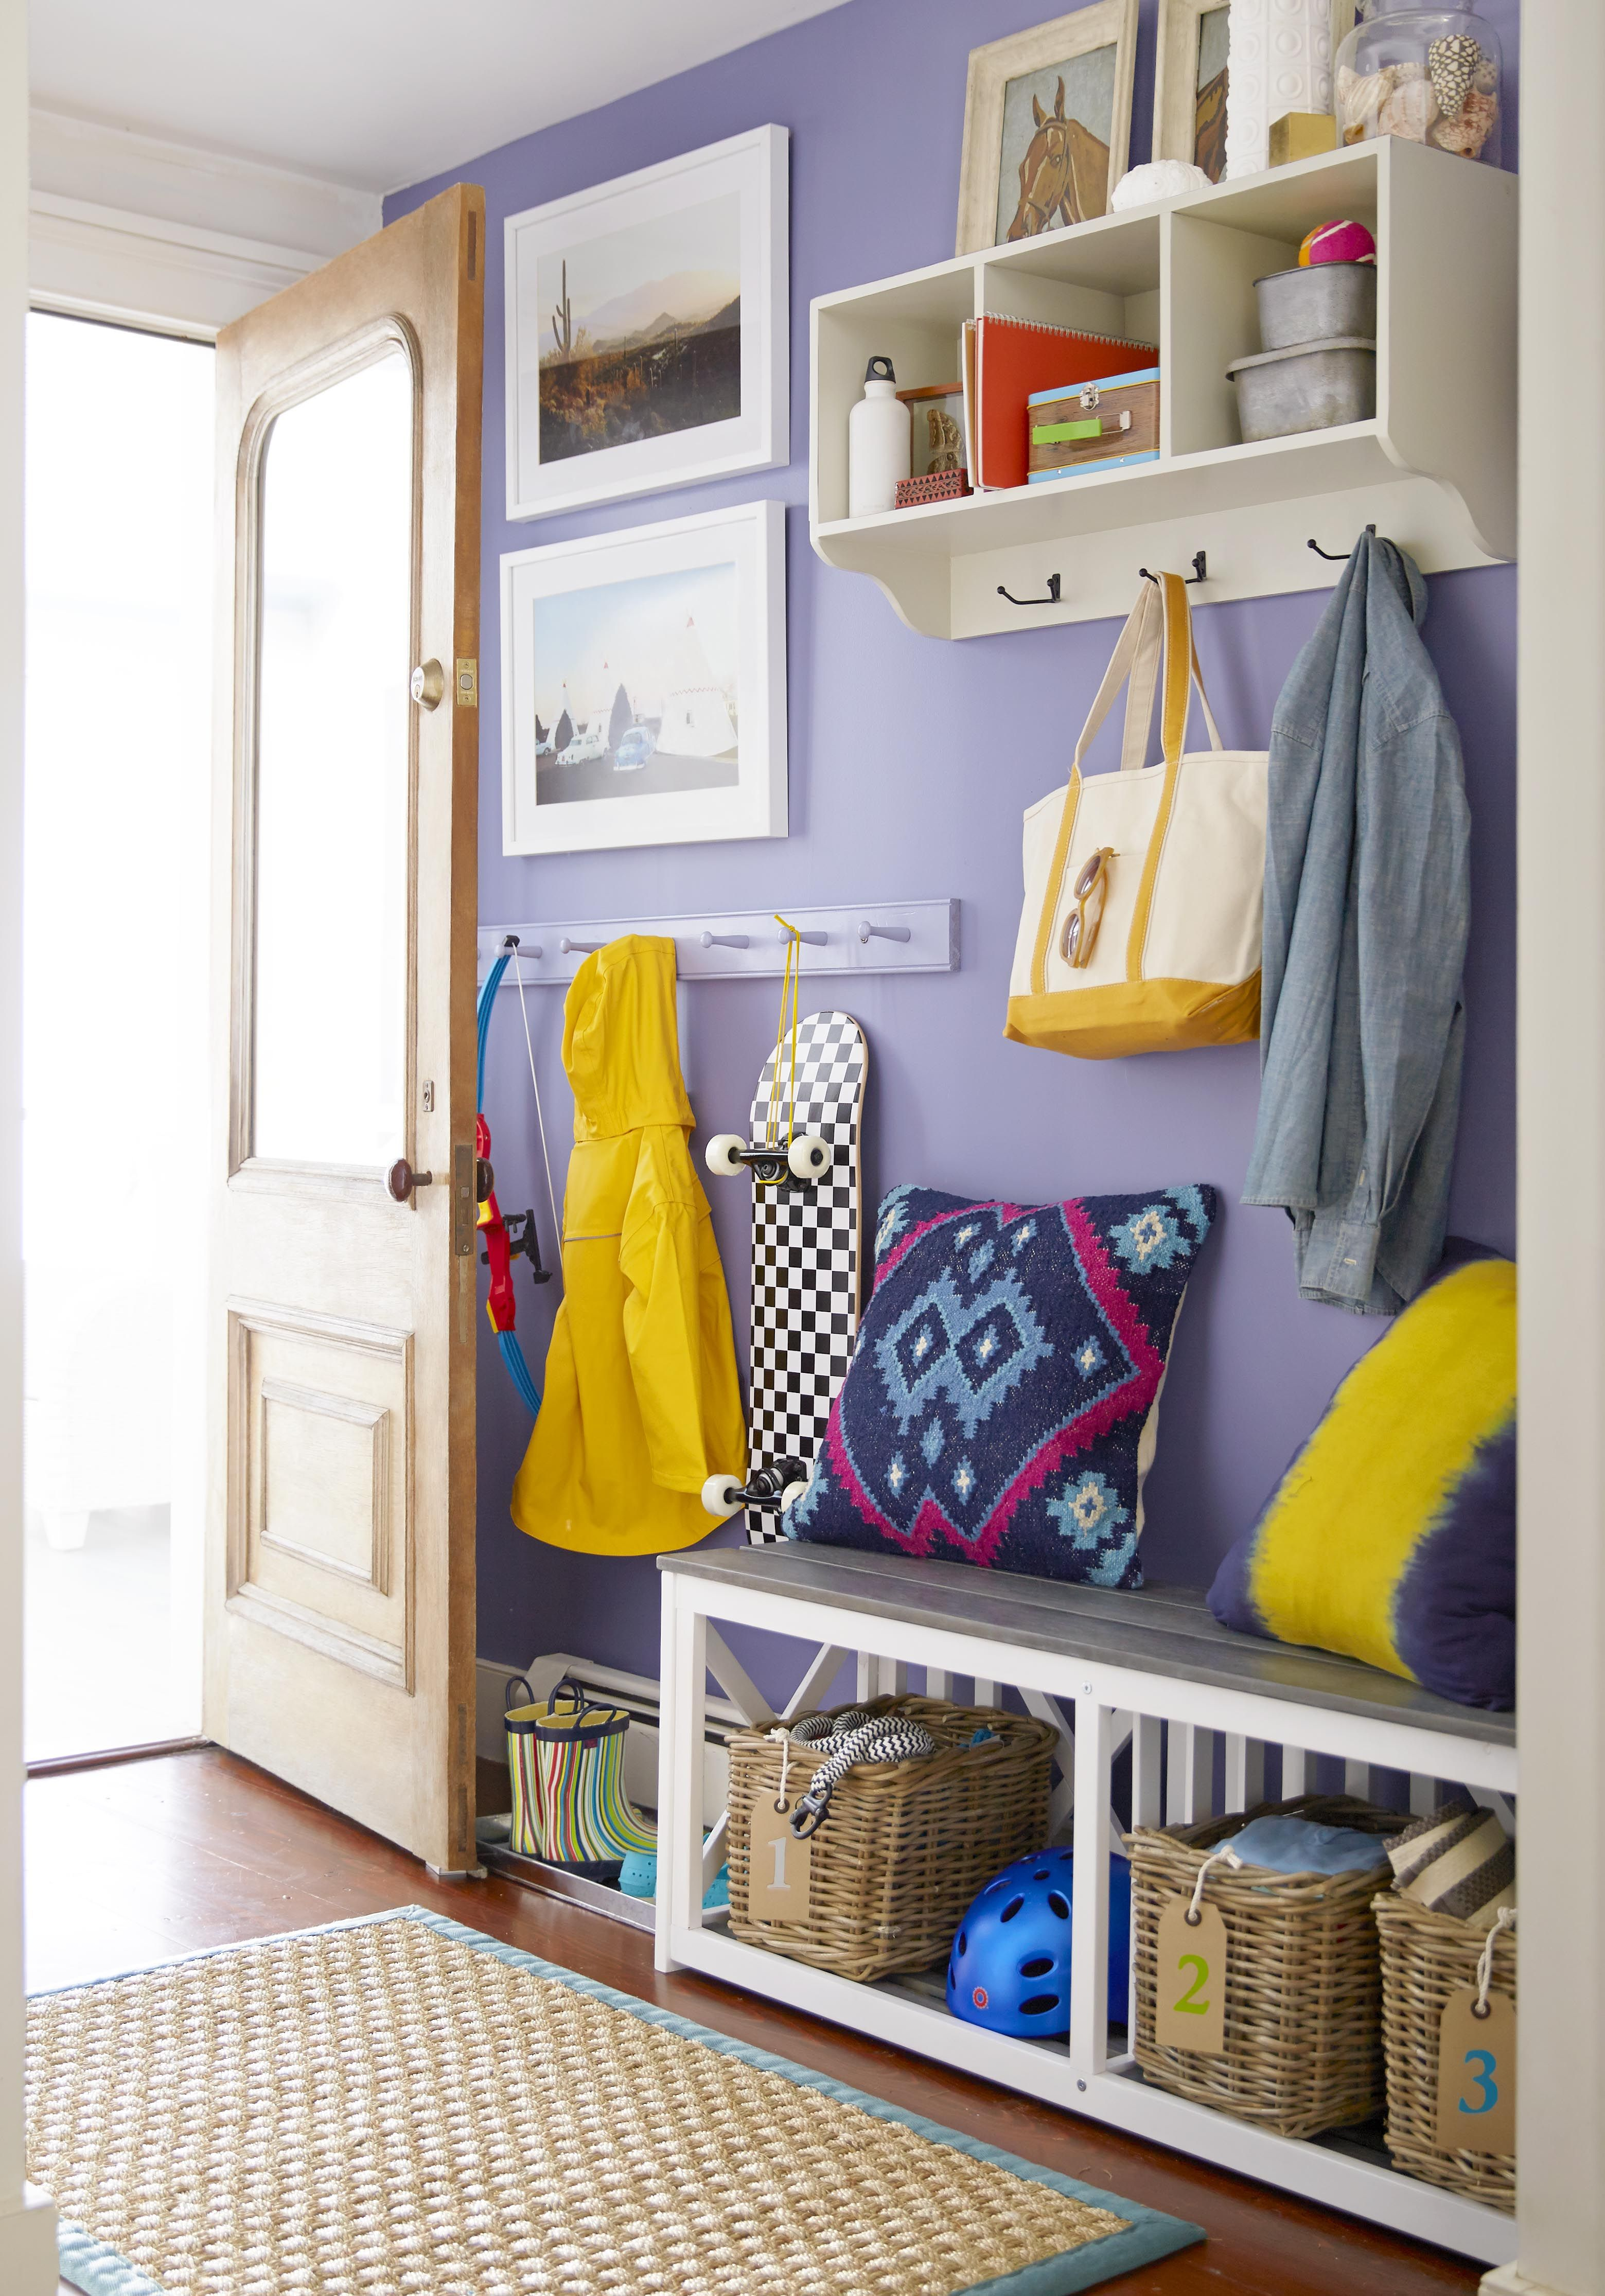 A bench wall mounted cubbies and a slim